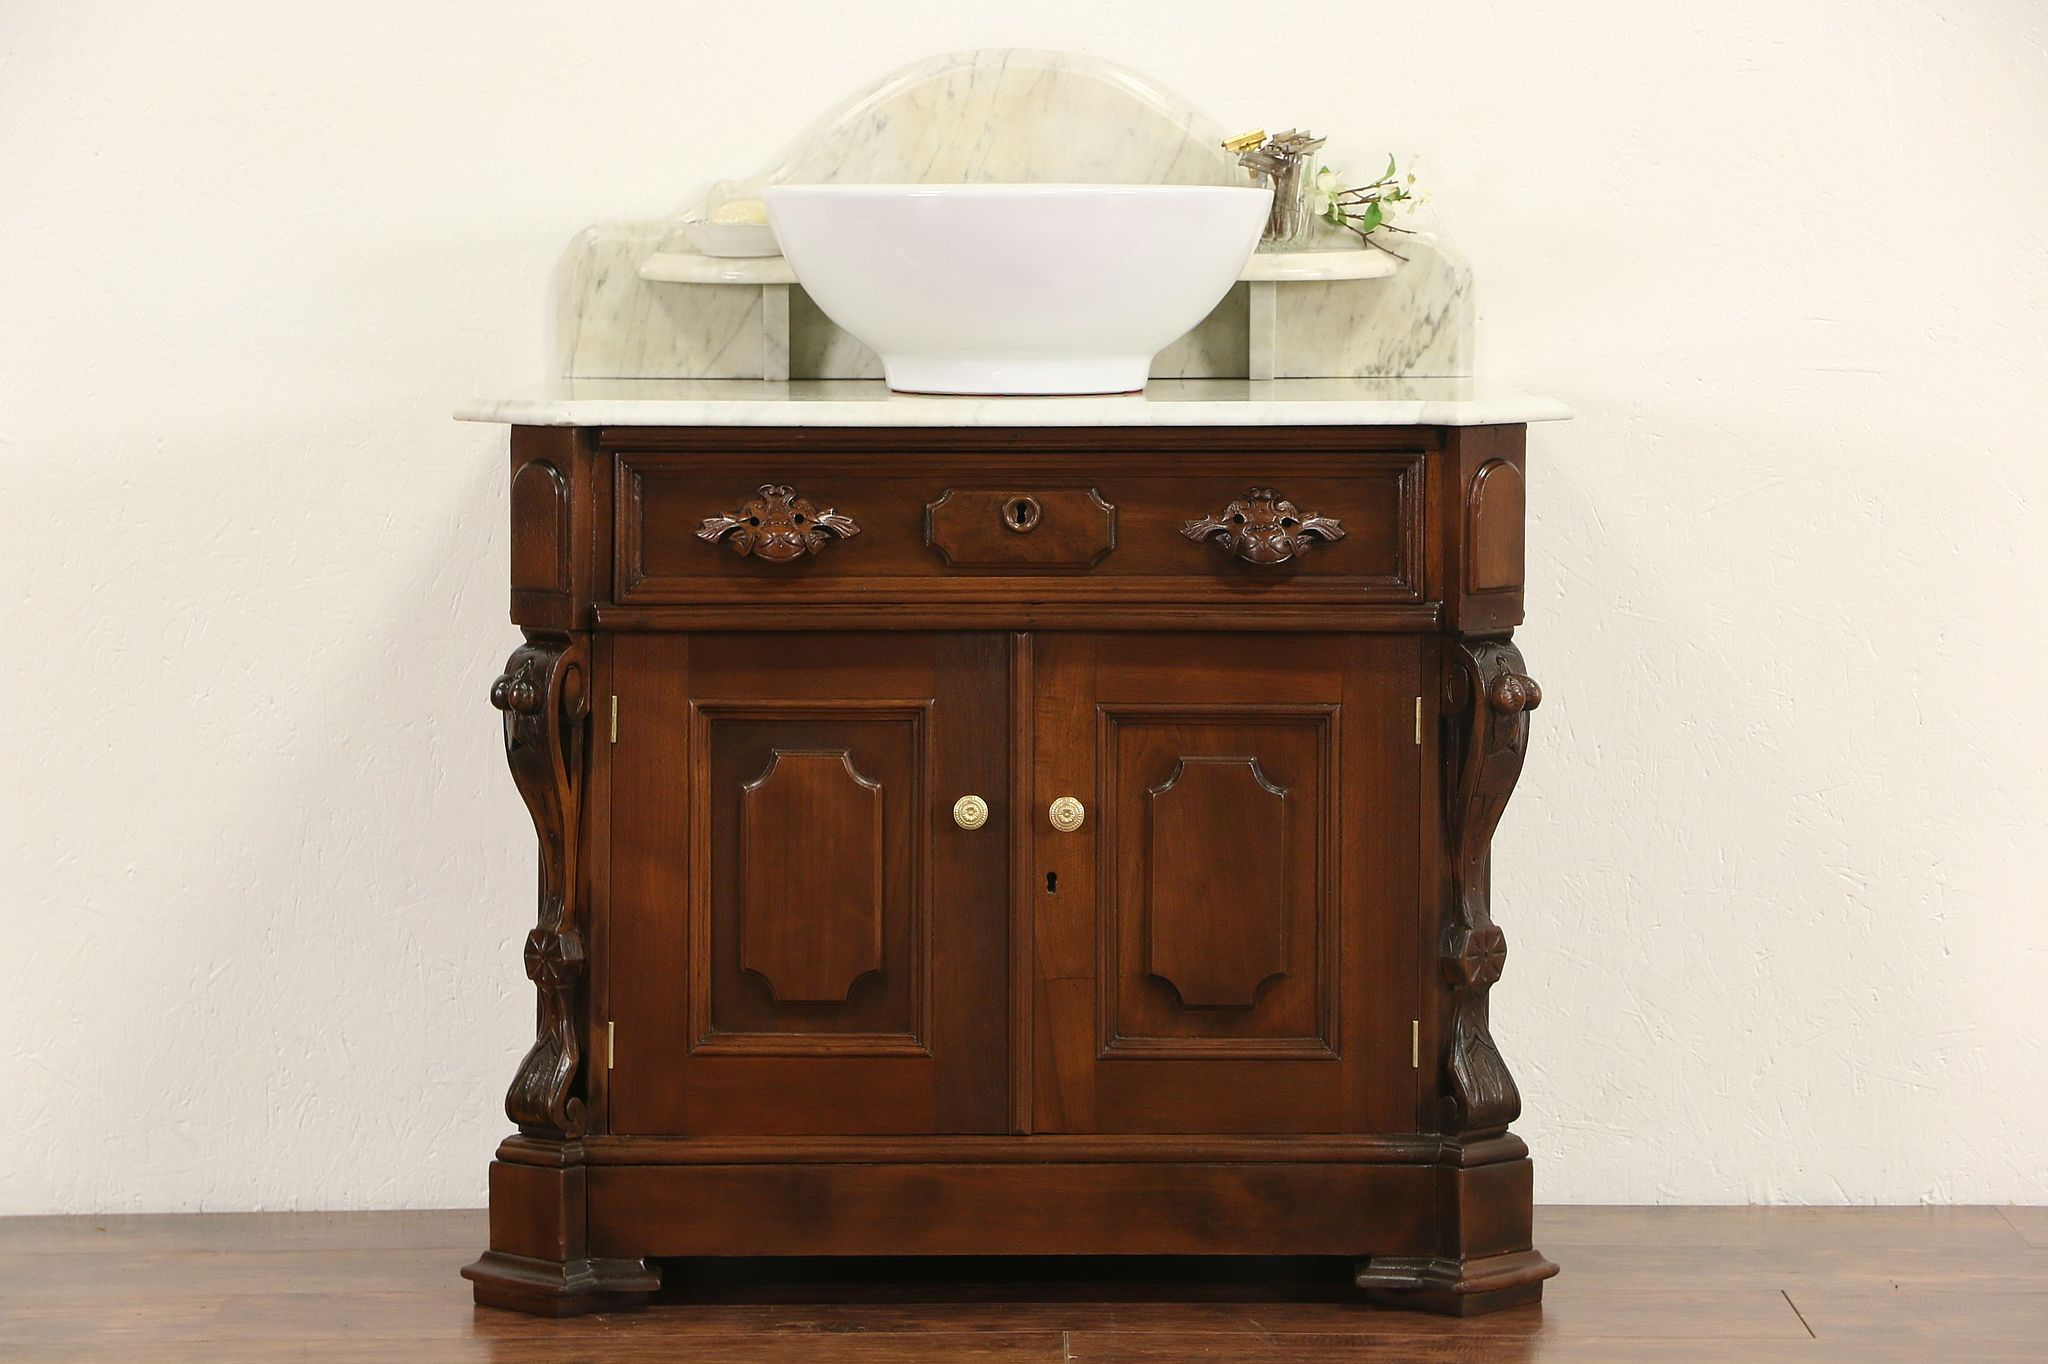 Commode furniture - Victorian Carved Walnut 1870 Antique Marble Top Commode Sink Vanity Or Bar